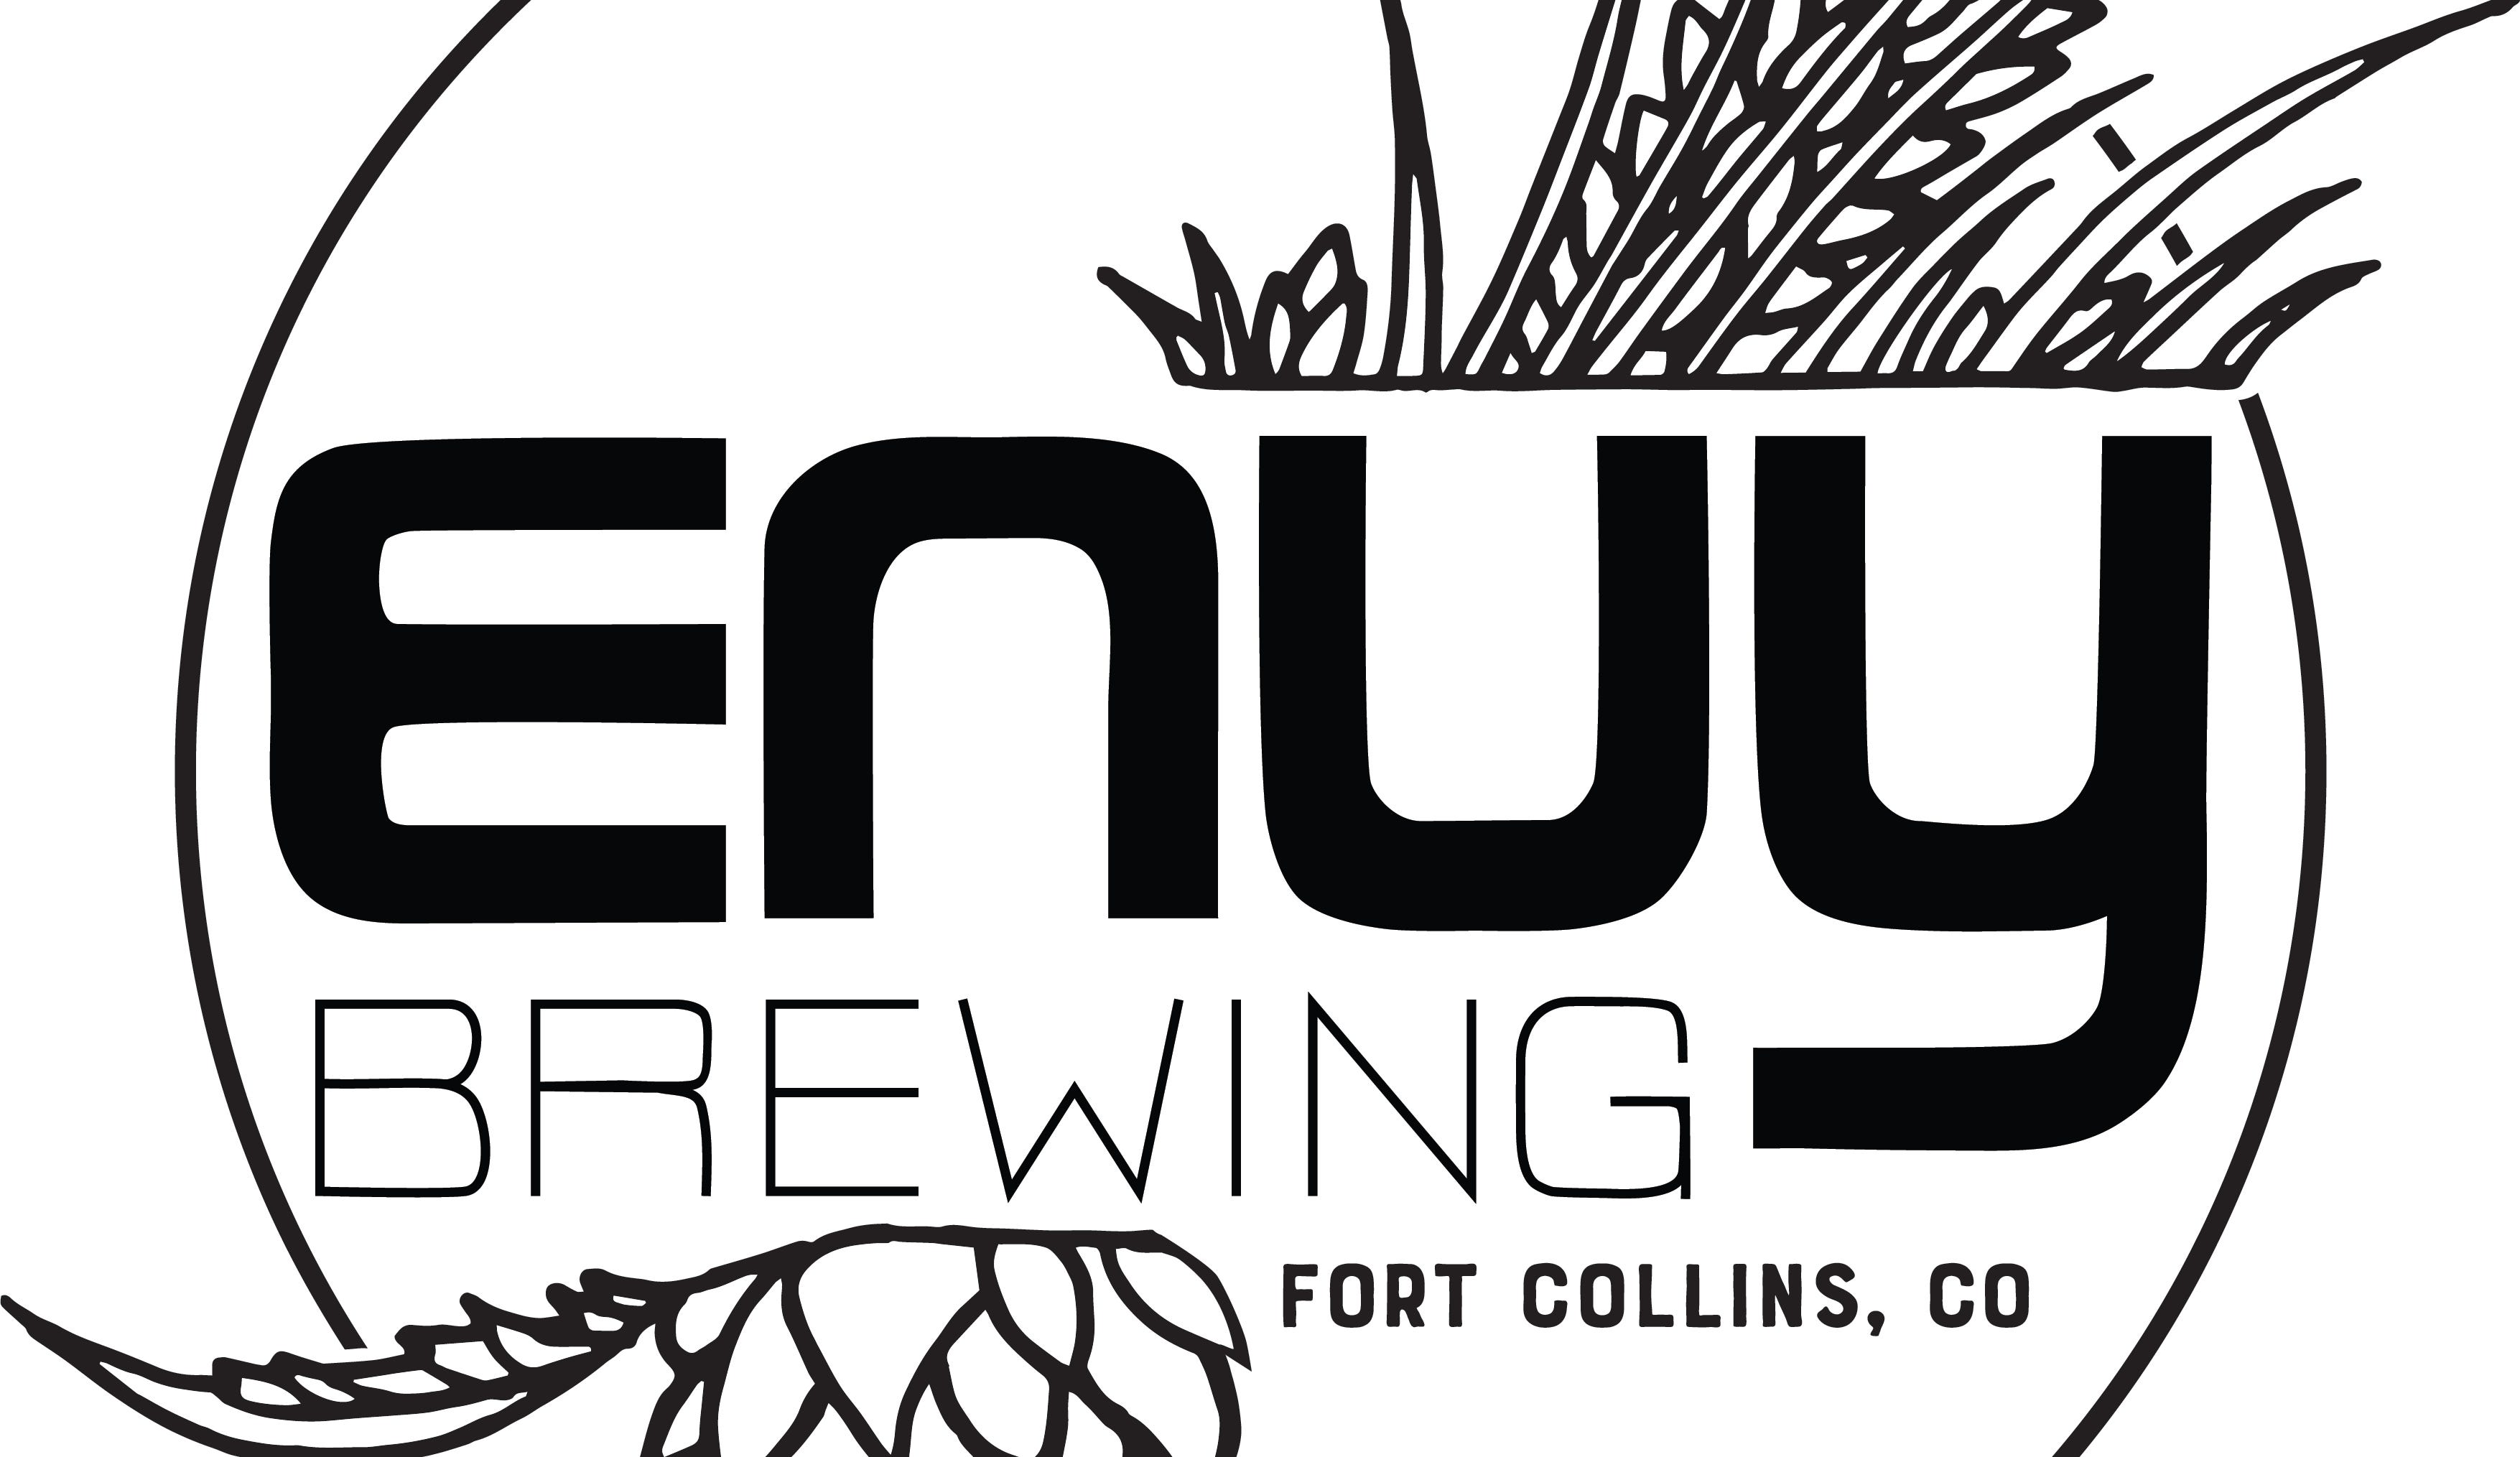 Well-traveled brewer helping launch Envy Brewing in Fort Collins